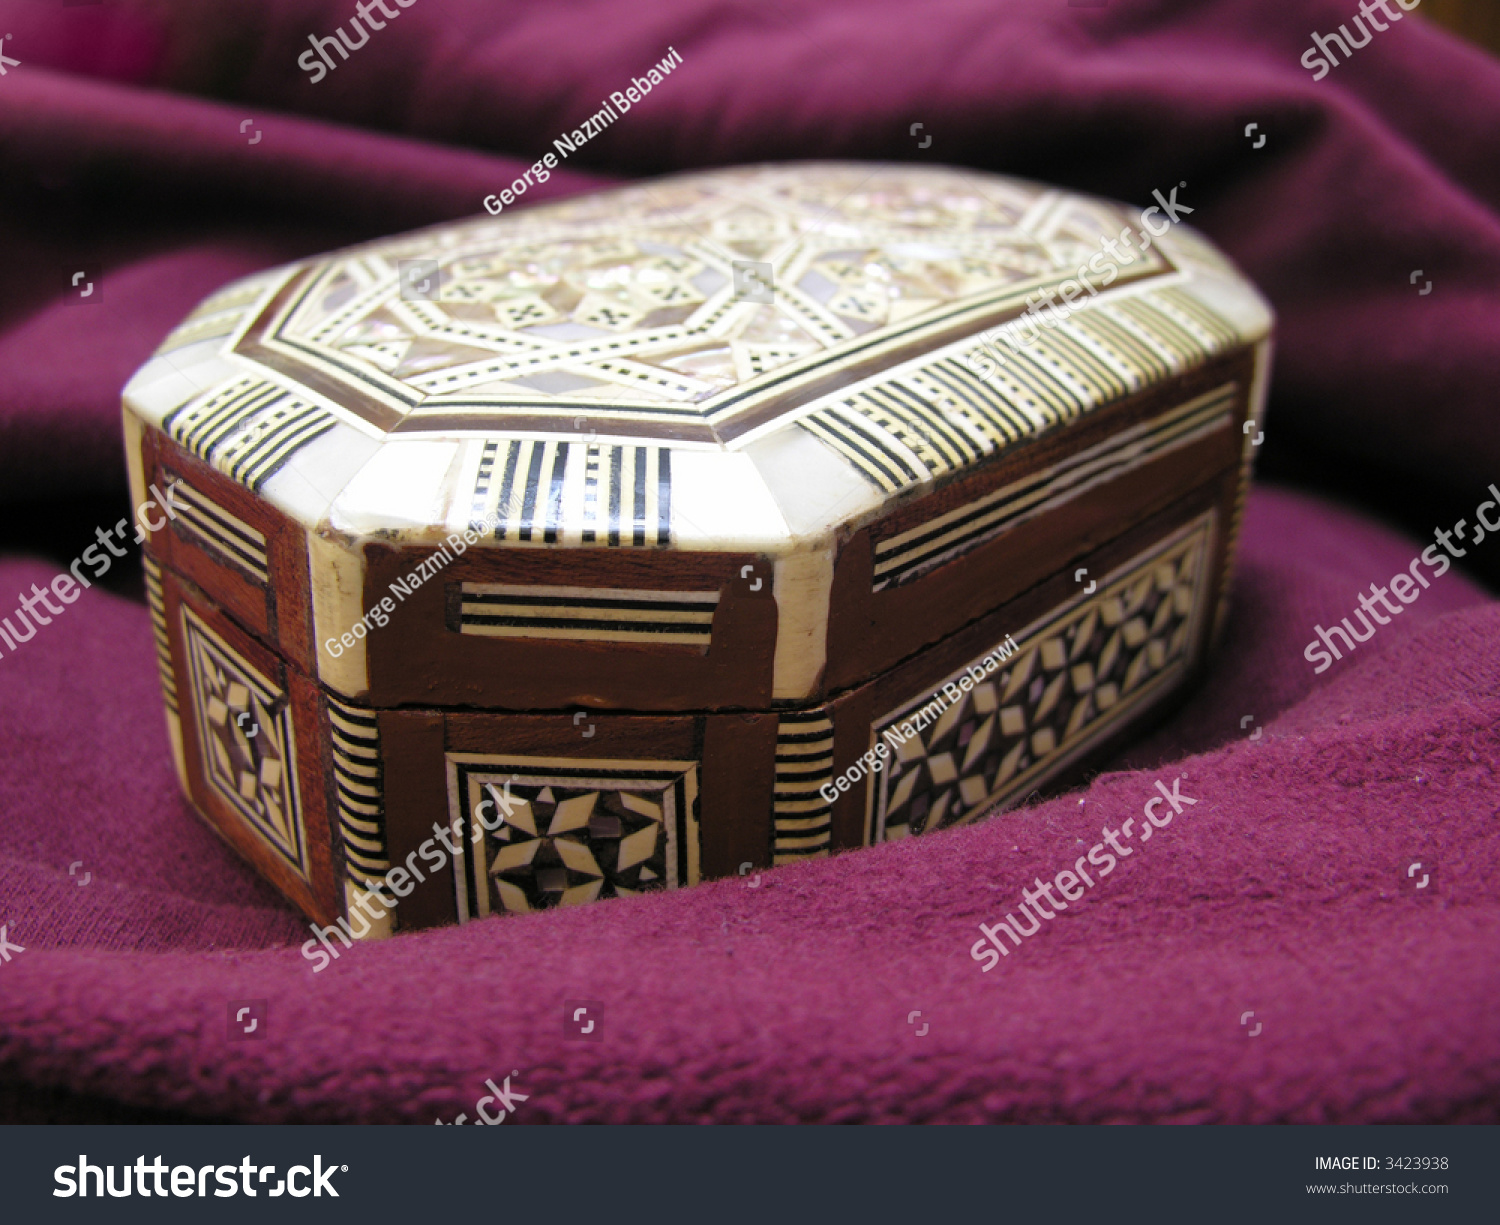 Egyptian Jewelry Box On Red Blanket Stock Photo 3423938 Shutterstock